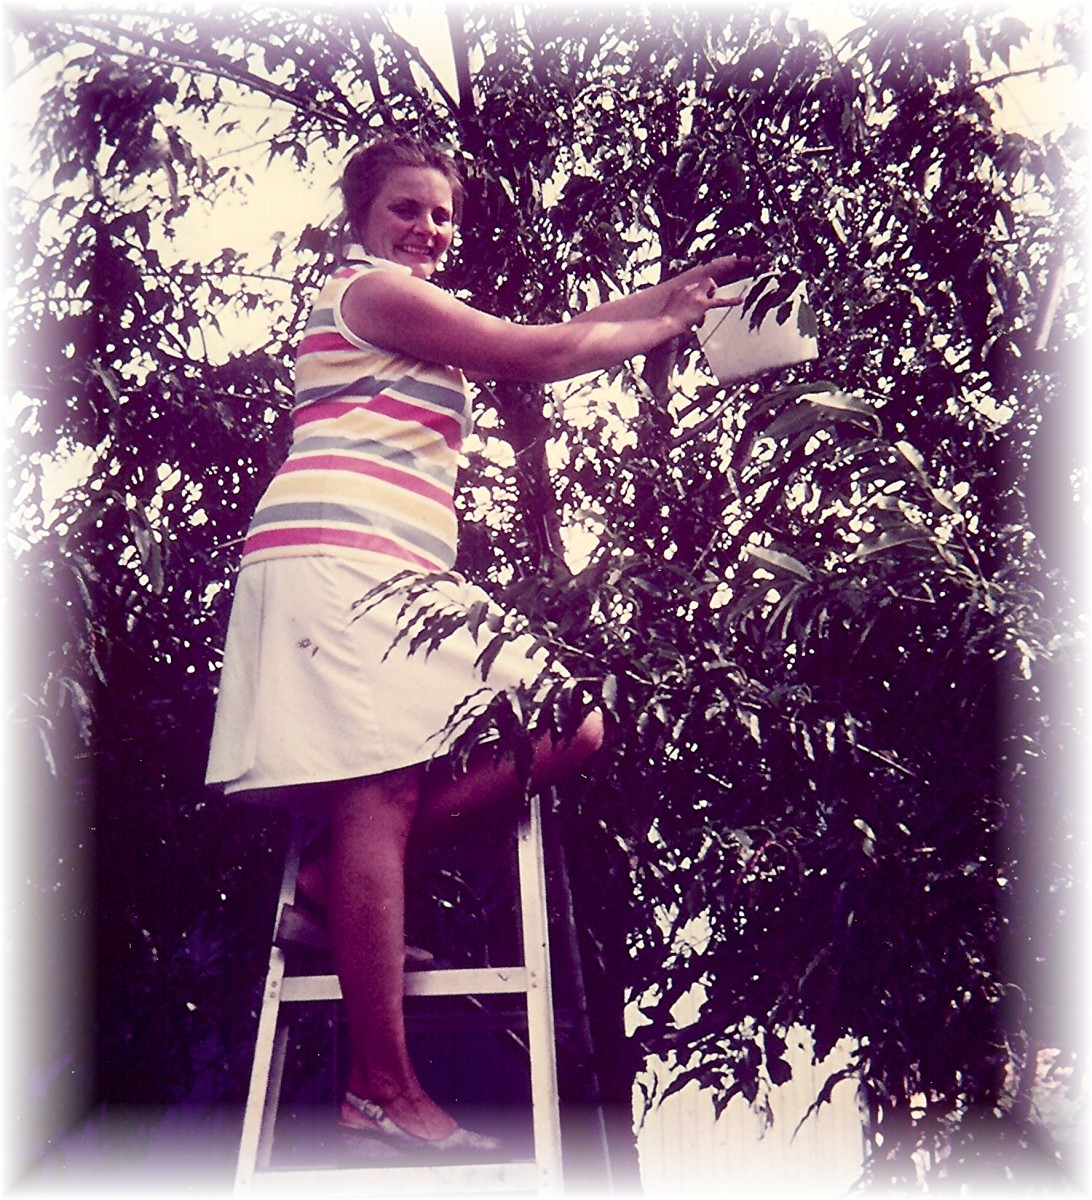 There I am picking choke cherries from our tree in the front yard.